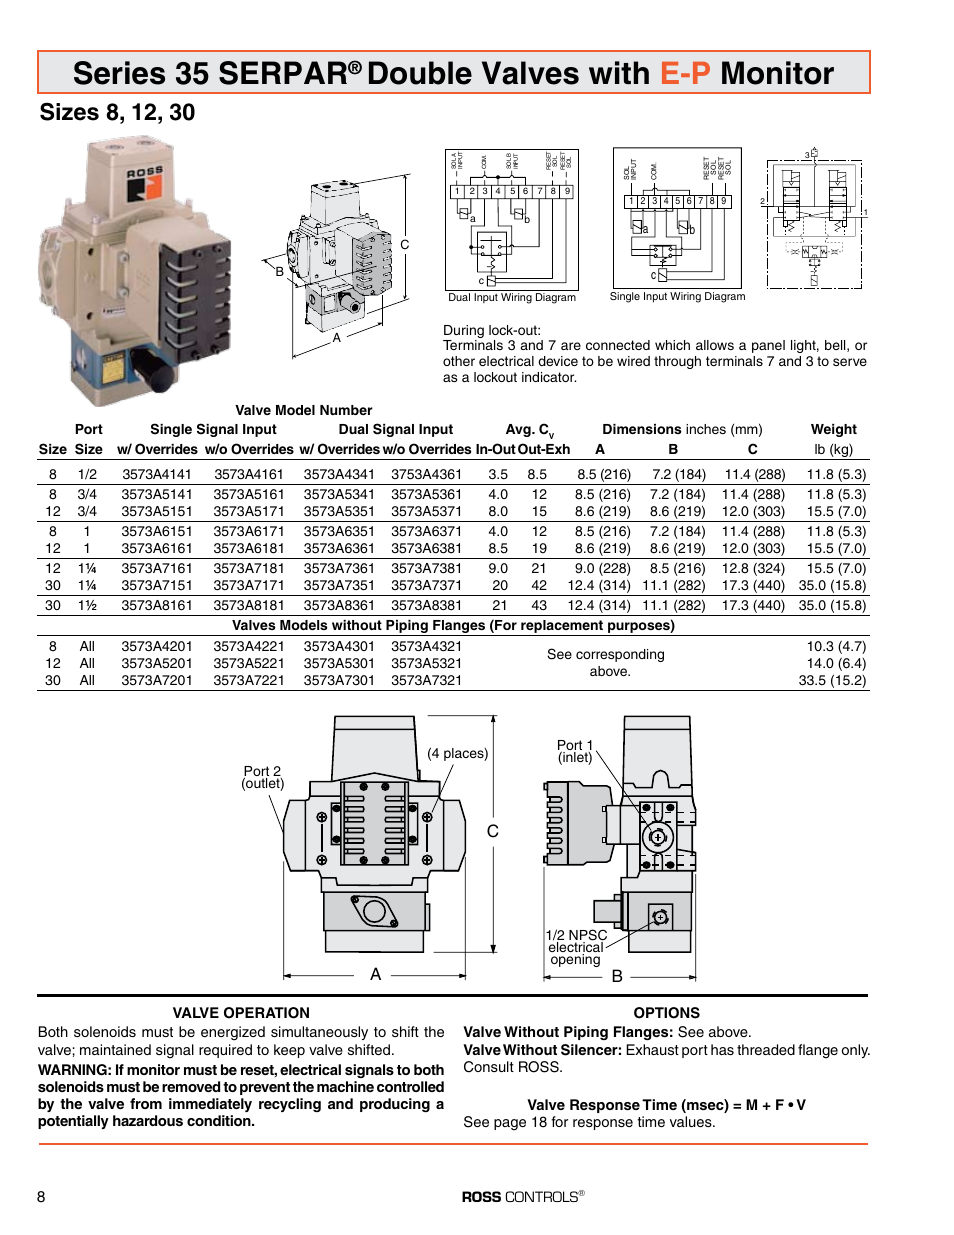 Ross Valve Wiring Diagram Diagrams Control Actuator Serpar Crossflow Double Valves With E P Monitor Series 35 Rh Manualsdir Com Electric Lamp